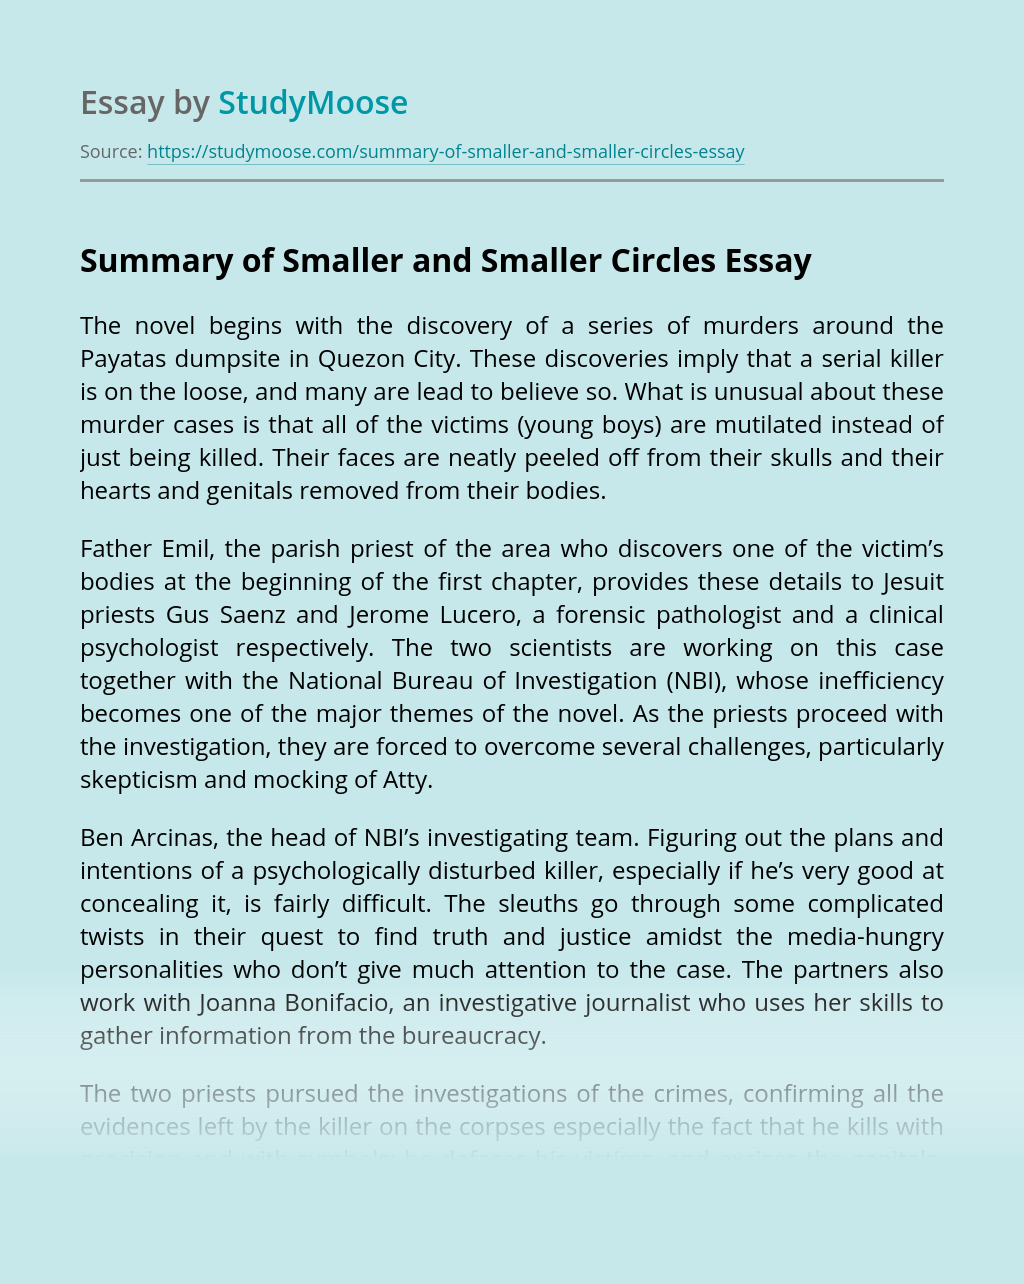 Summary of Smaller and Smaller Circles